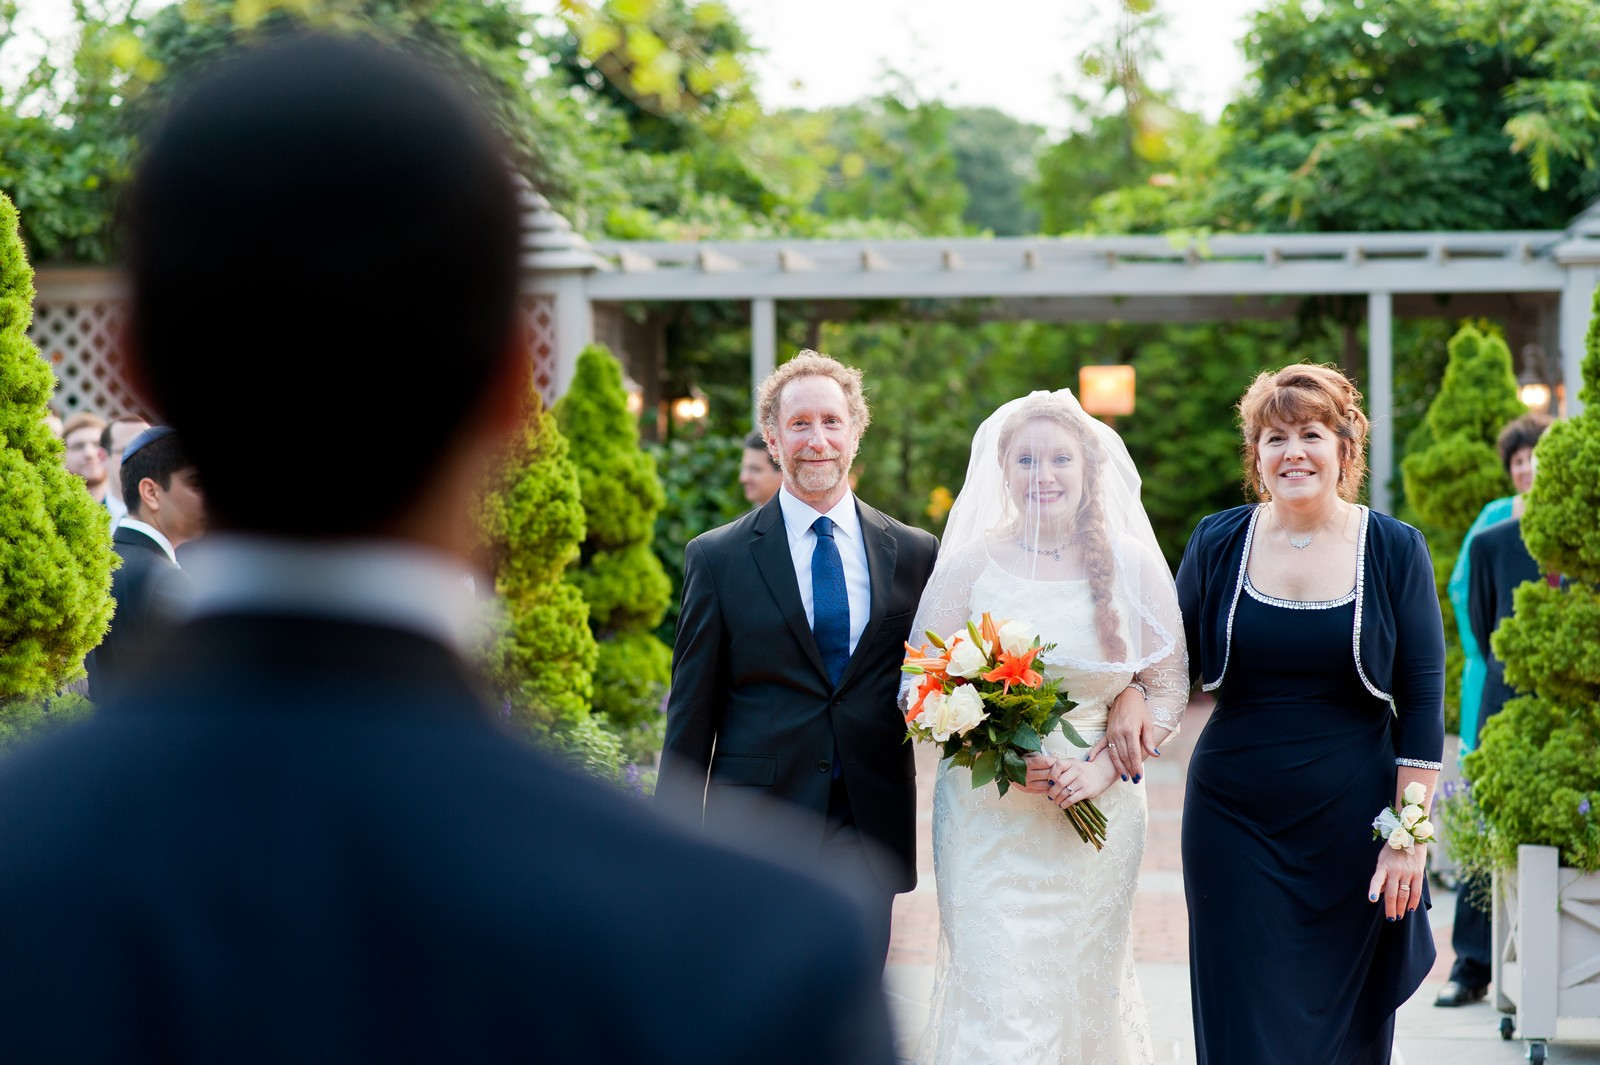 Sam and Yishai's Modern Orthodox Jewish Wedding at Crest Hollow Country Club, Woodbury NY, Photos by Chaim Schvarcz, Bride, Groom, Chuppah